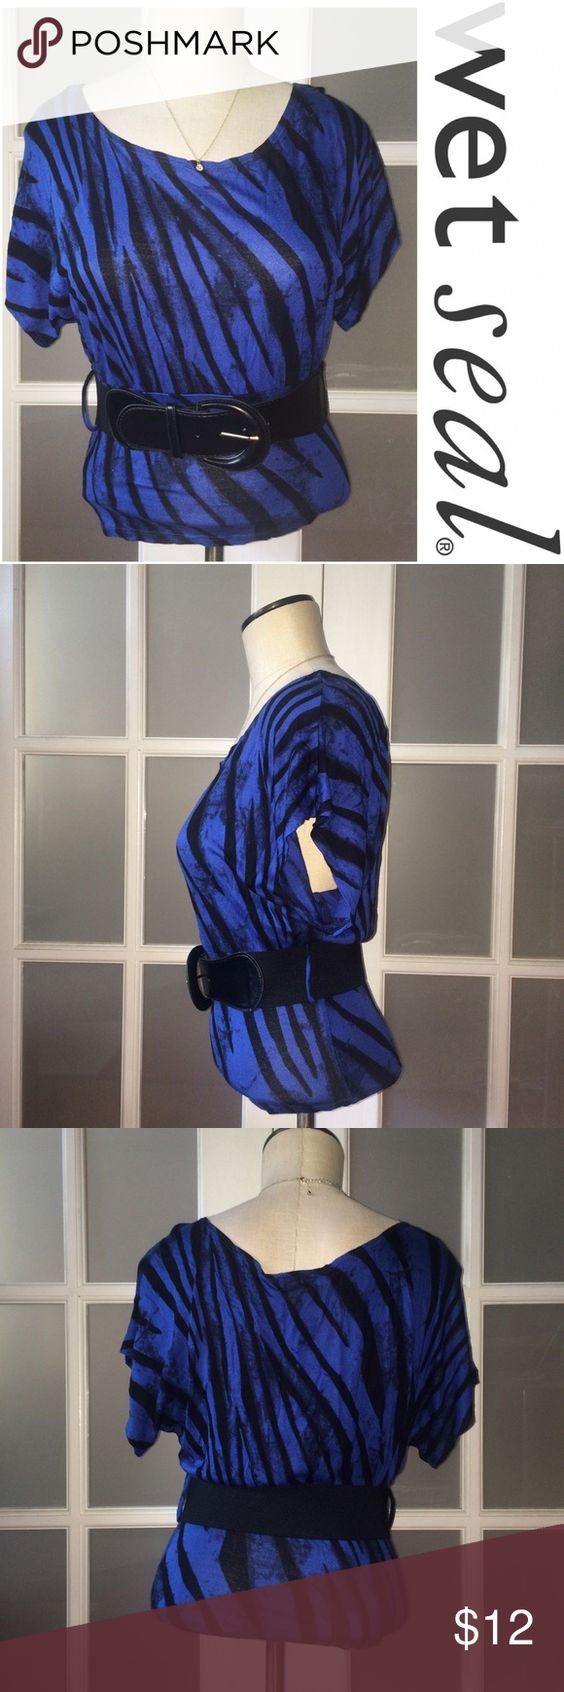 Wet seal blue and black top Wet Seal blue and black stripped top. Short sleeves. Comes with black belt! Wet Seal Tops